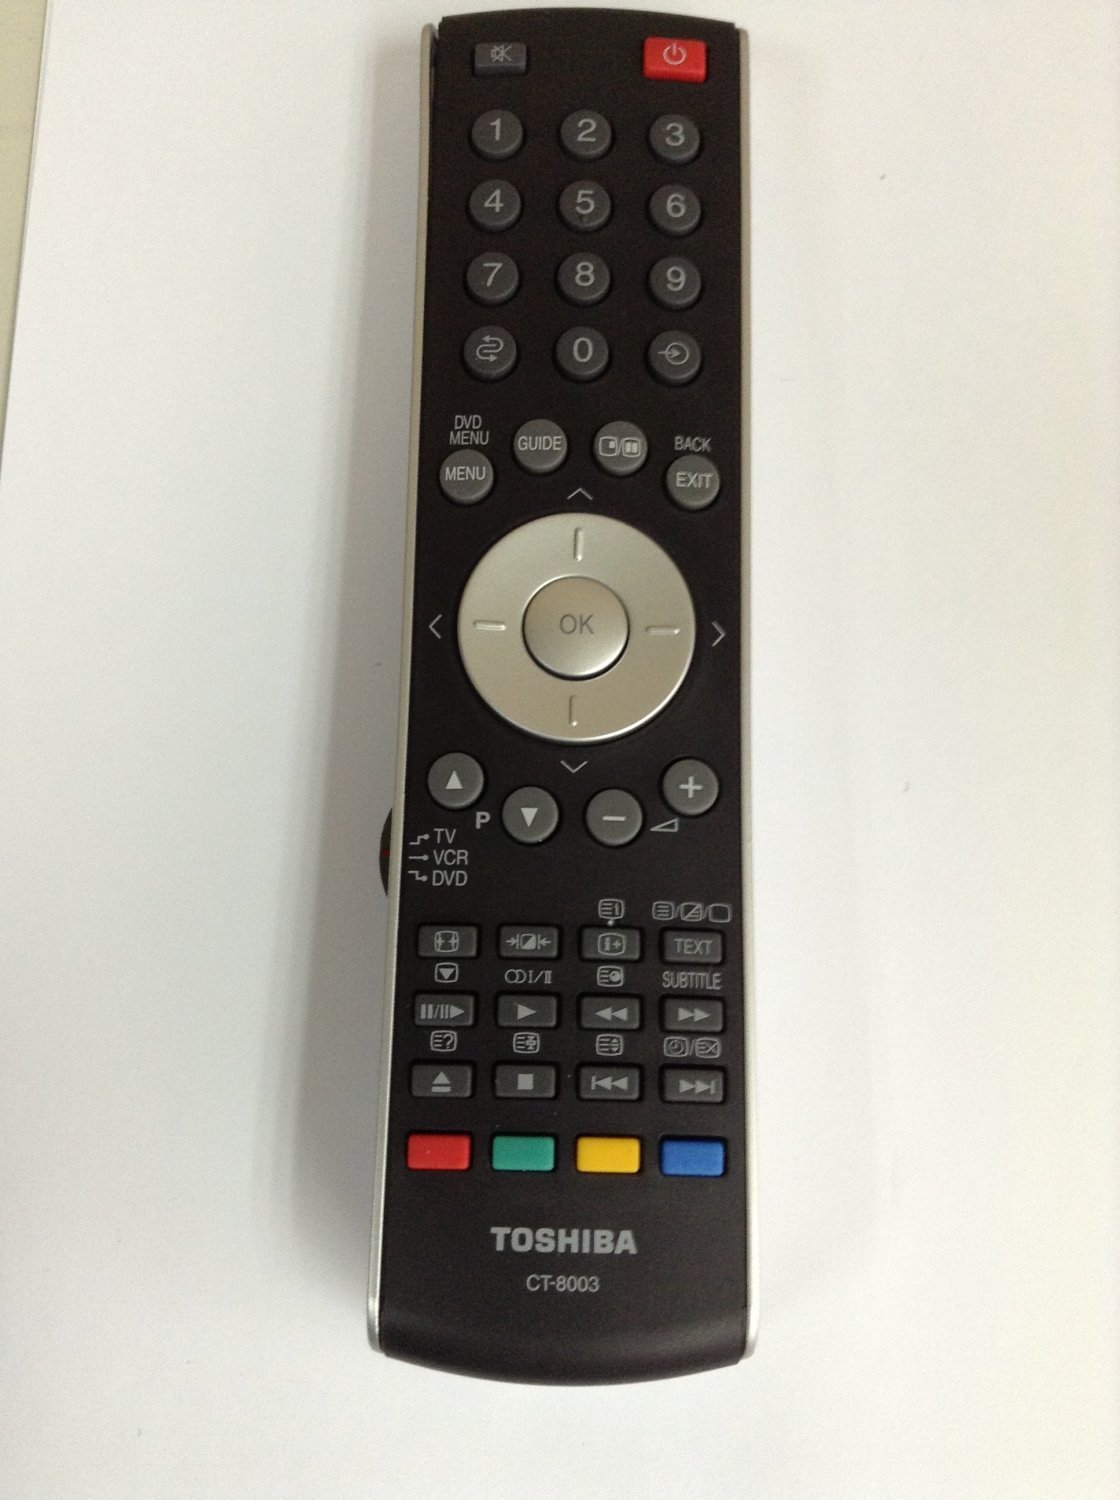 REMOTE CONTROL FOR TOSHIBA TV CT-90325 55HT1U 46G310U 40FT1U 40E200U 40E210U